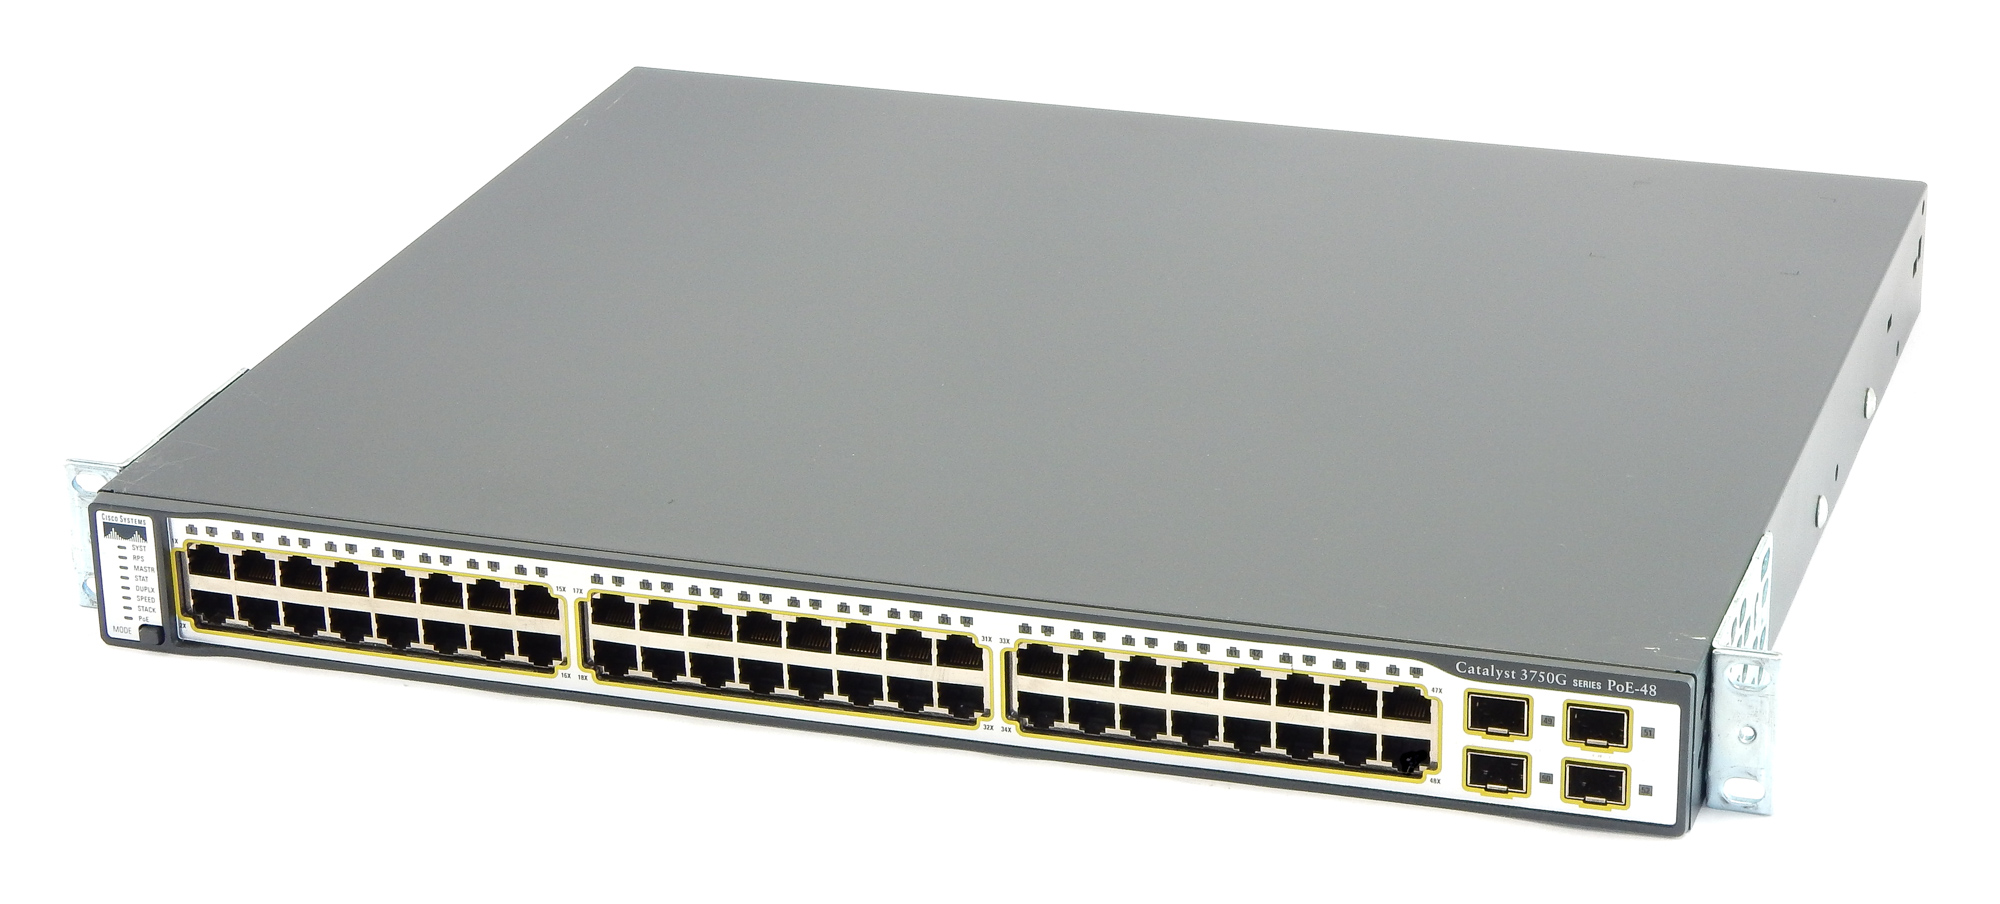 Cisco Catalyst 3750G Series PoE-48 Switch WS-C3750G-48PS-S V05